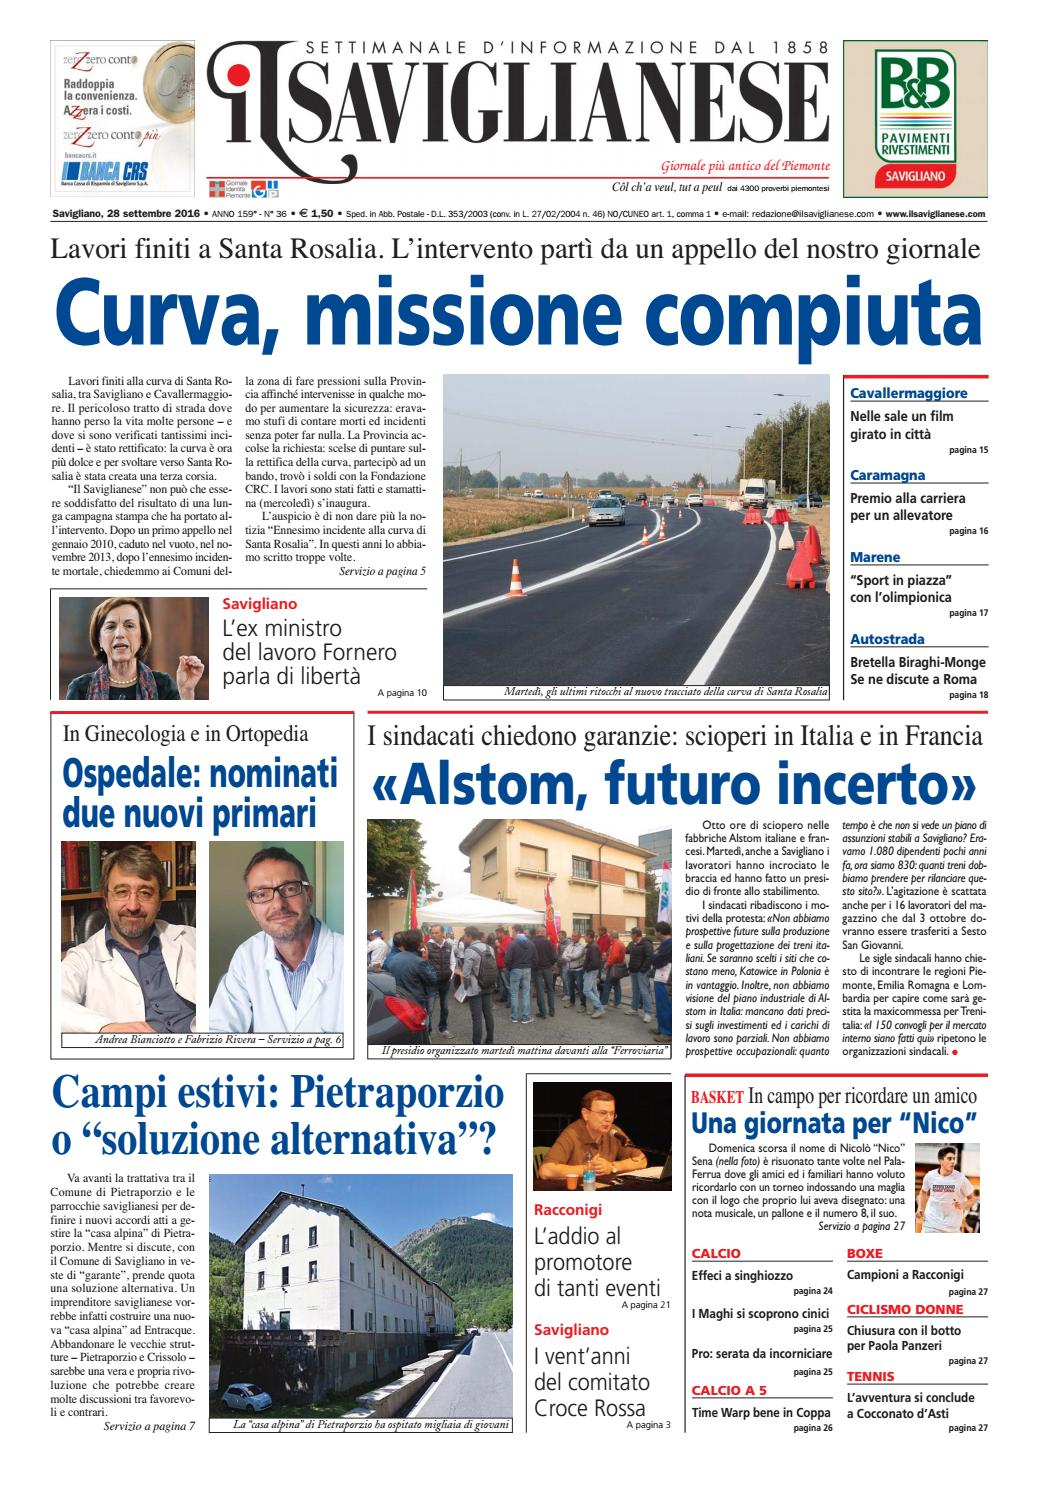 28 9 2016 by Valerio Maccagno - issuu 207887a5053